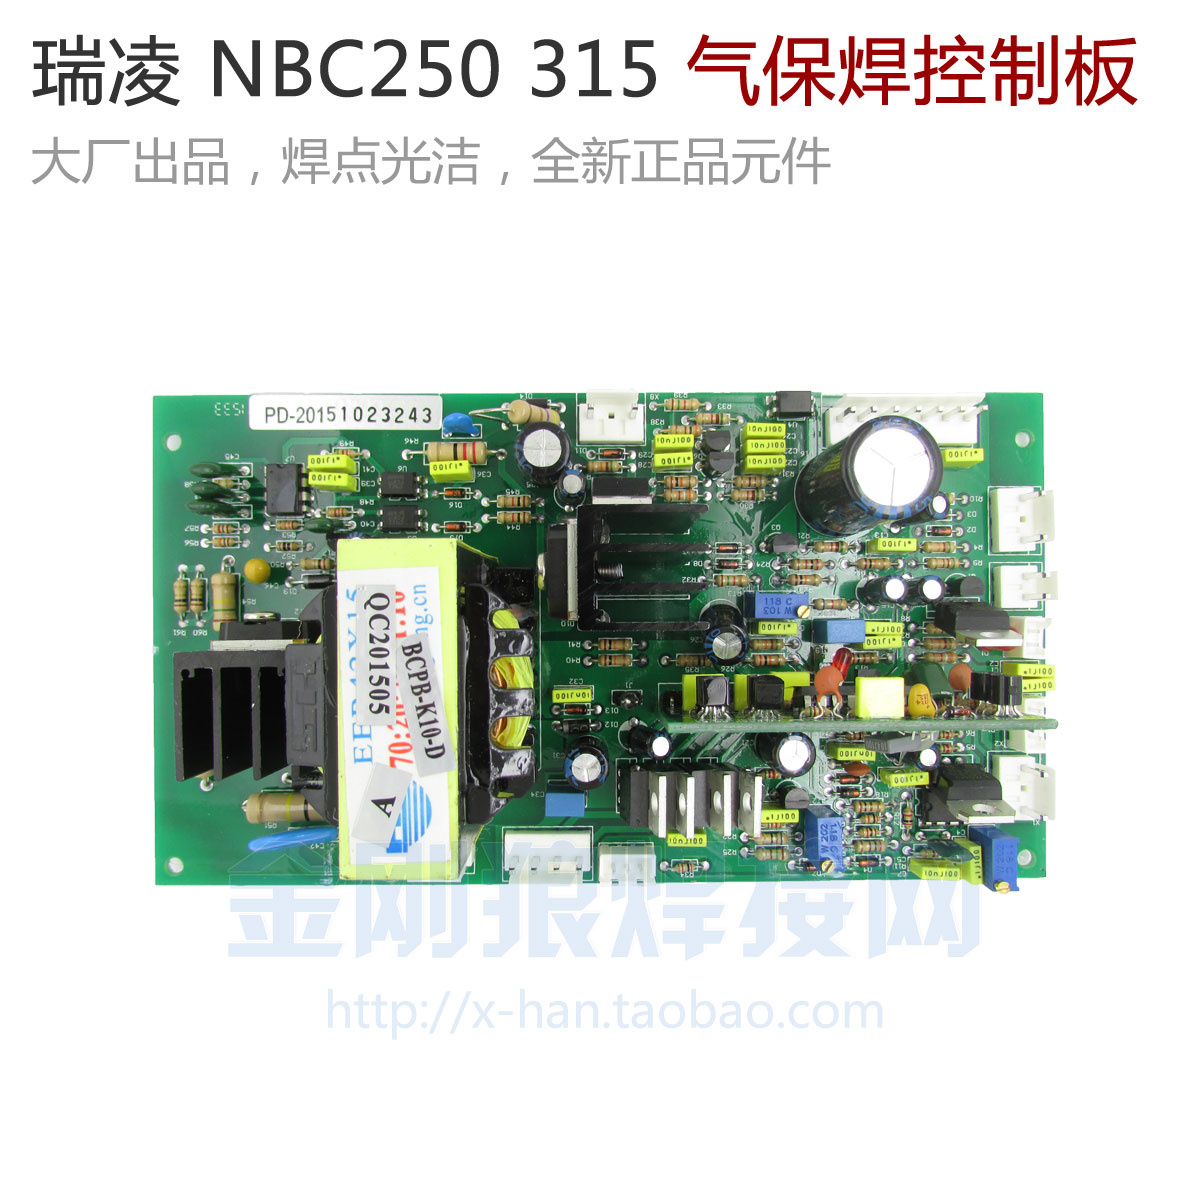 NBC250 315 MOS Inverter Carbon Dioxide Gas Shielded Welding Machine Control Board Circuit Board купить в Москве 2019